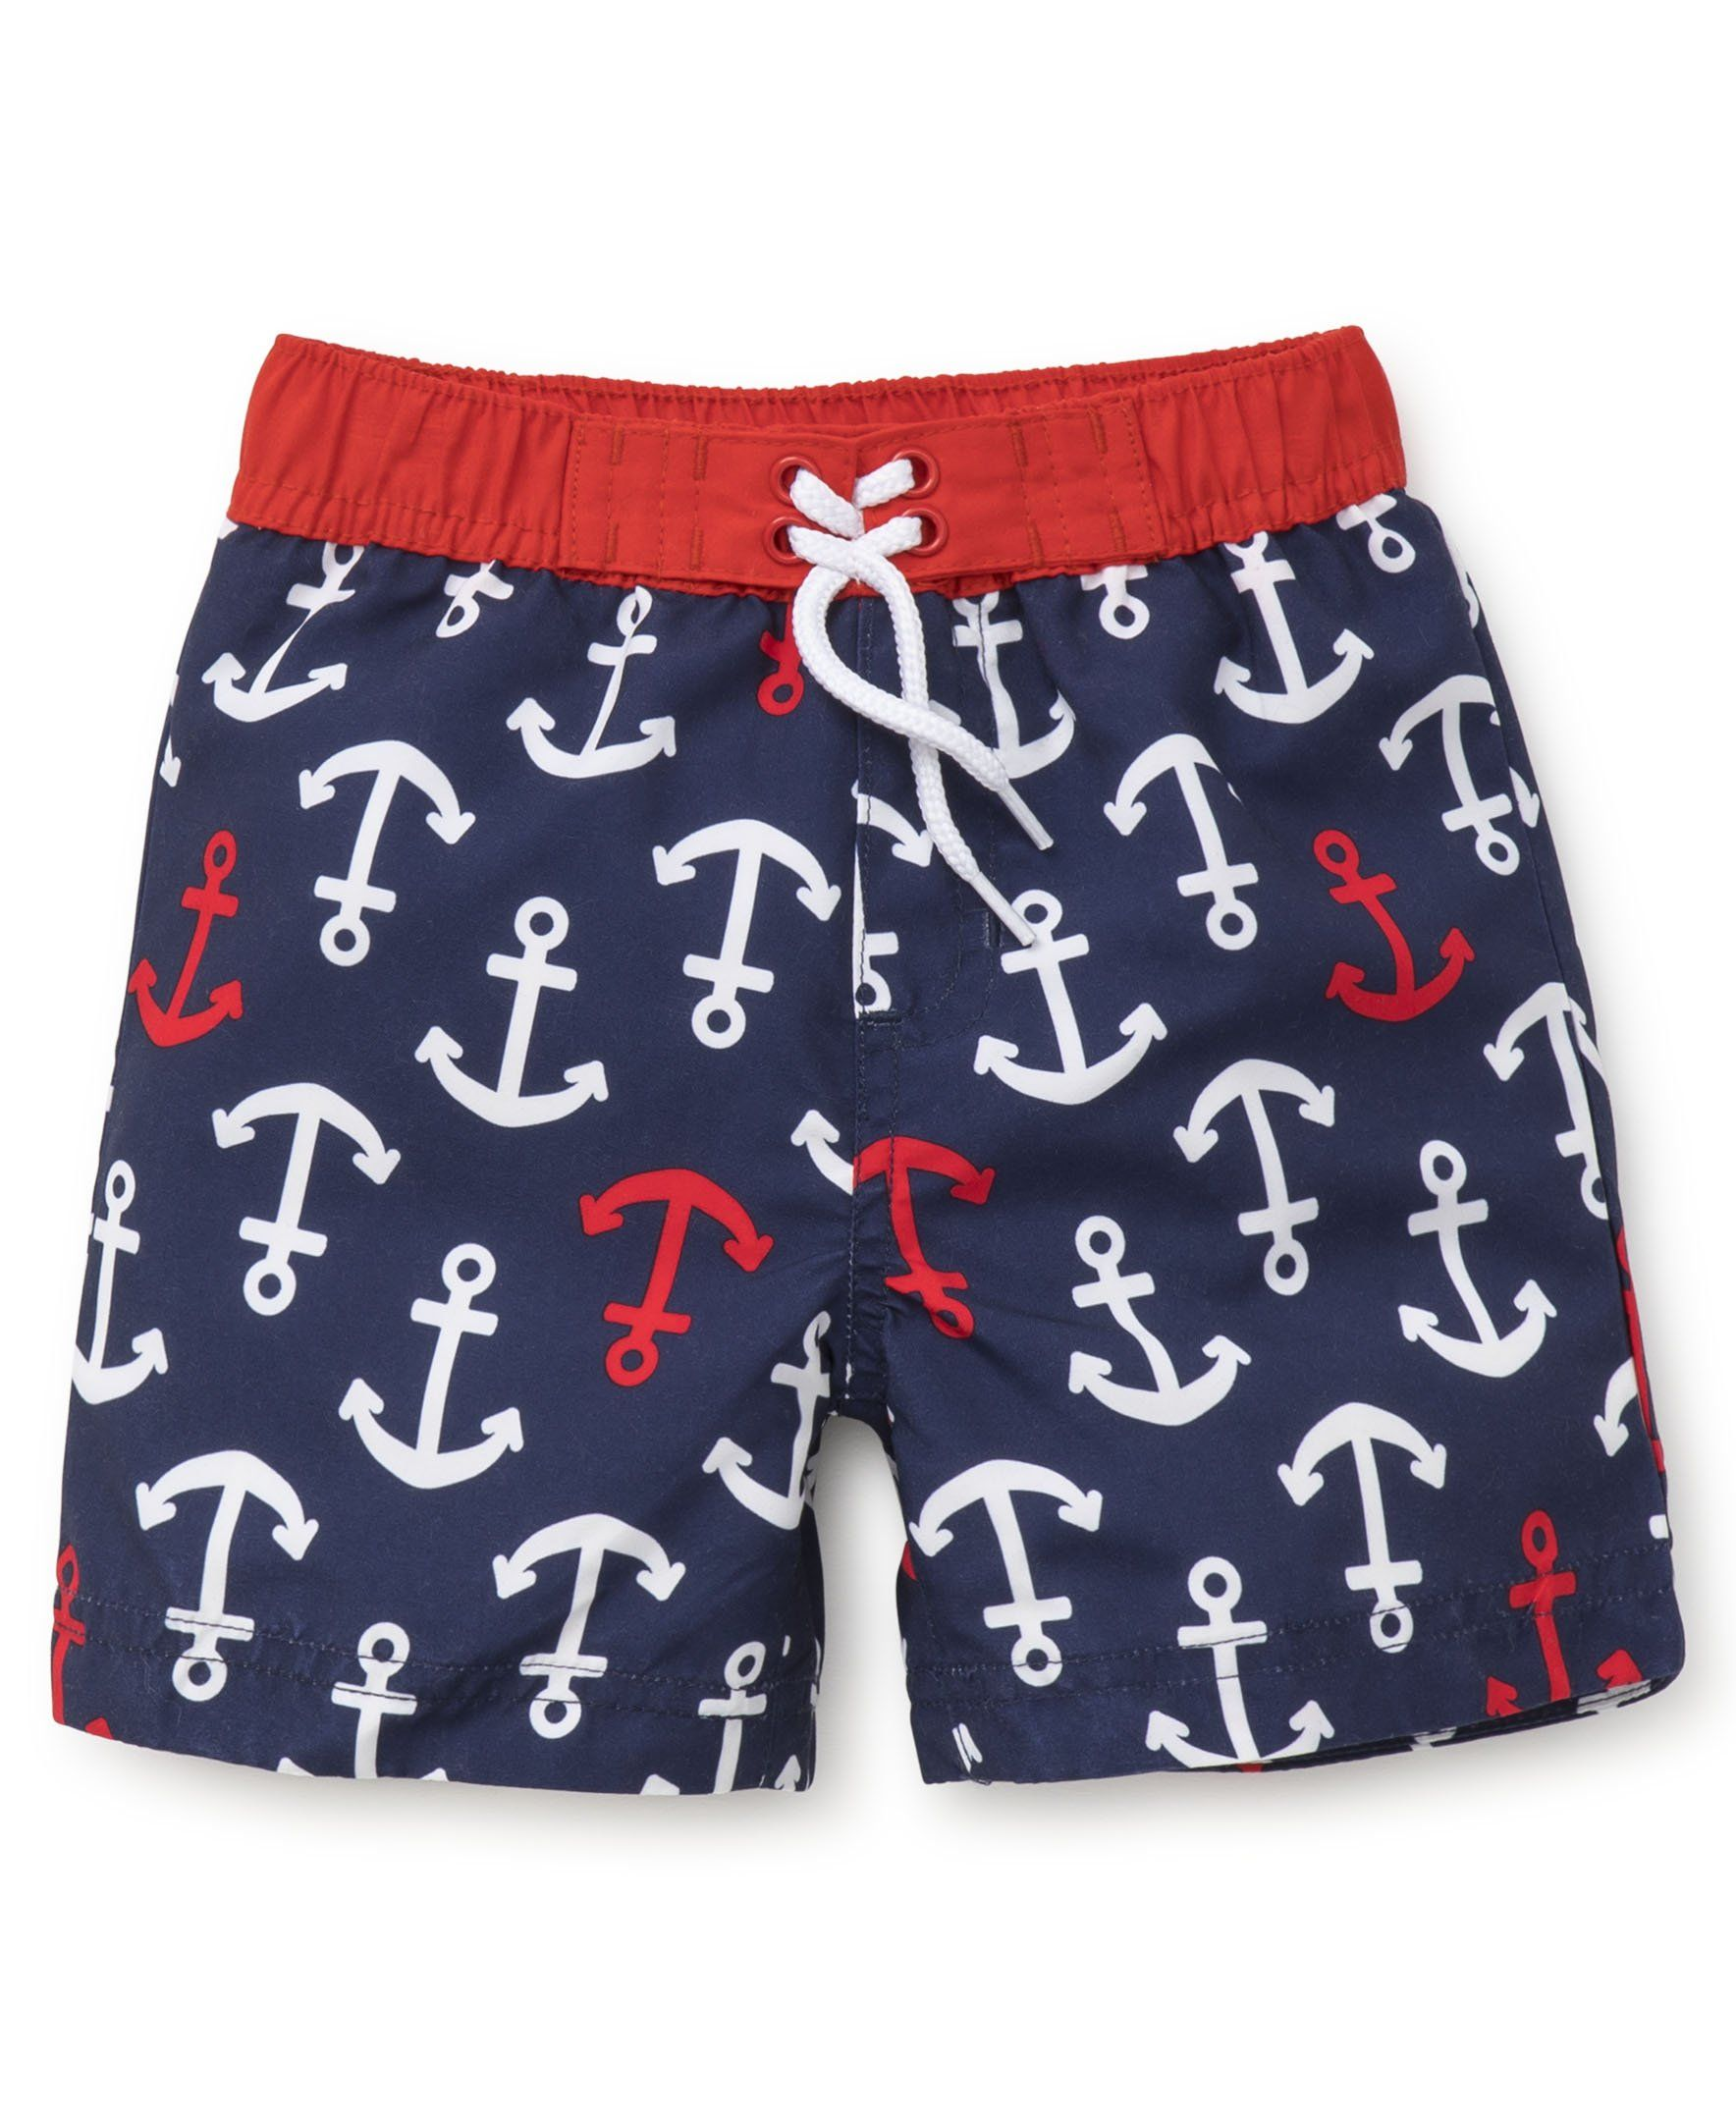 5148b30274 Little Me Baby Boys Swim Trunks Anchor New 18 Months >>> Click on the image  for additional details. (This is an affiliate link) #HashTag1